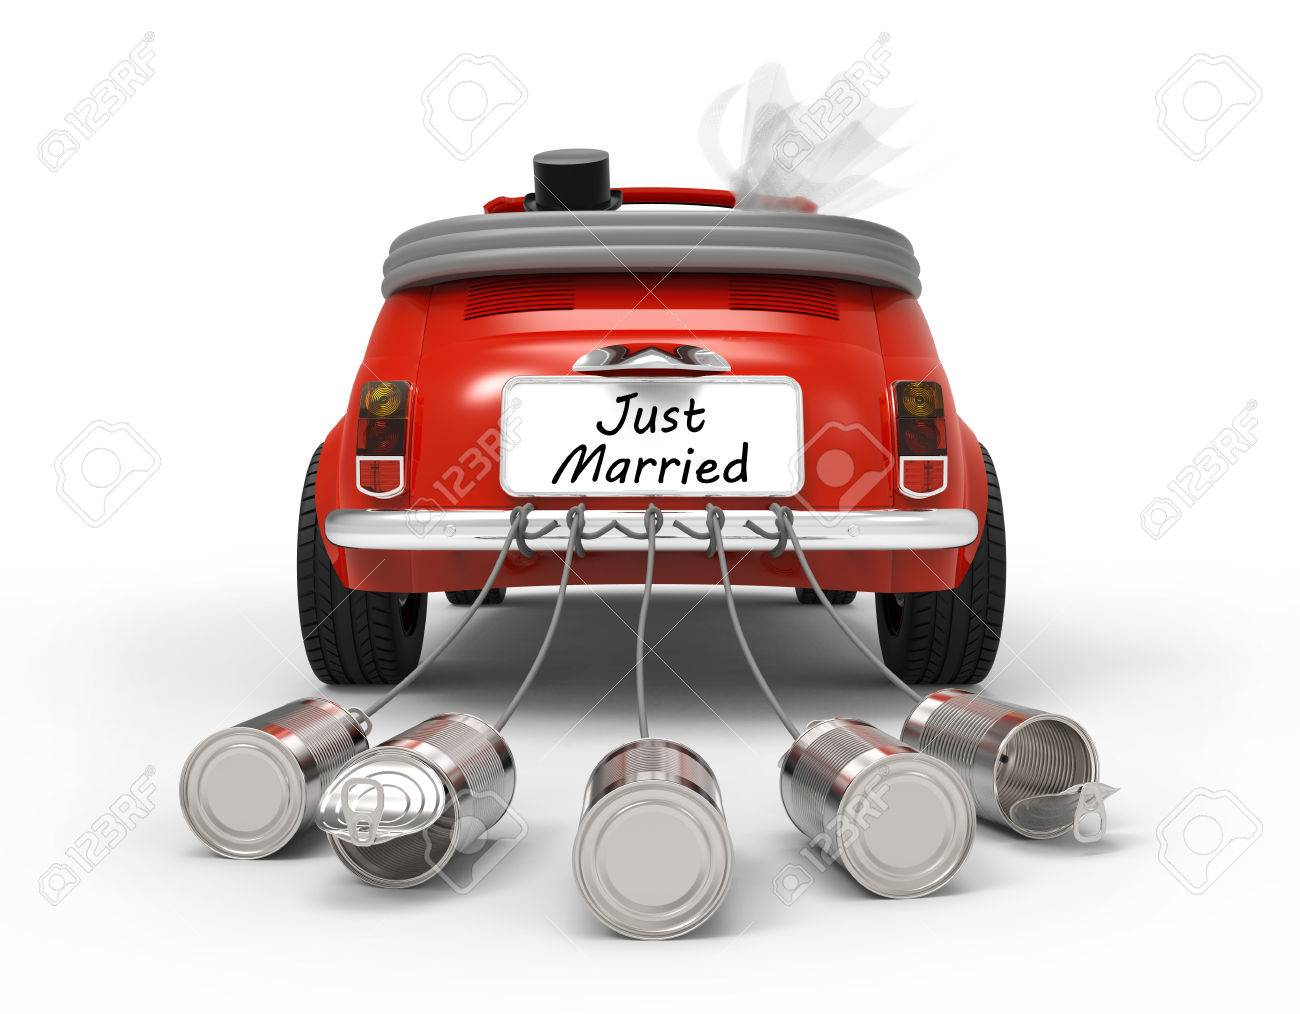 Just Married isolated on white background 3D rendering - 65352796